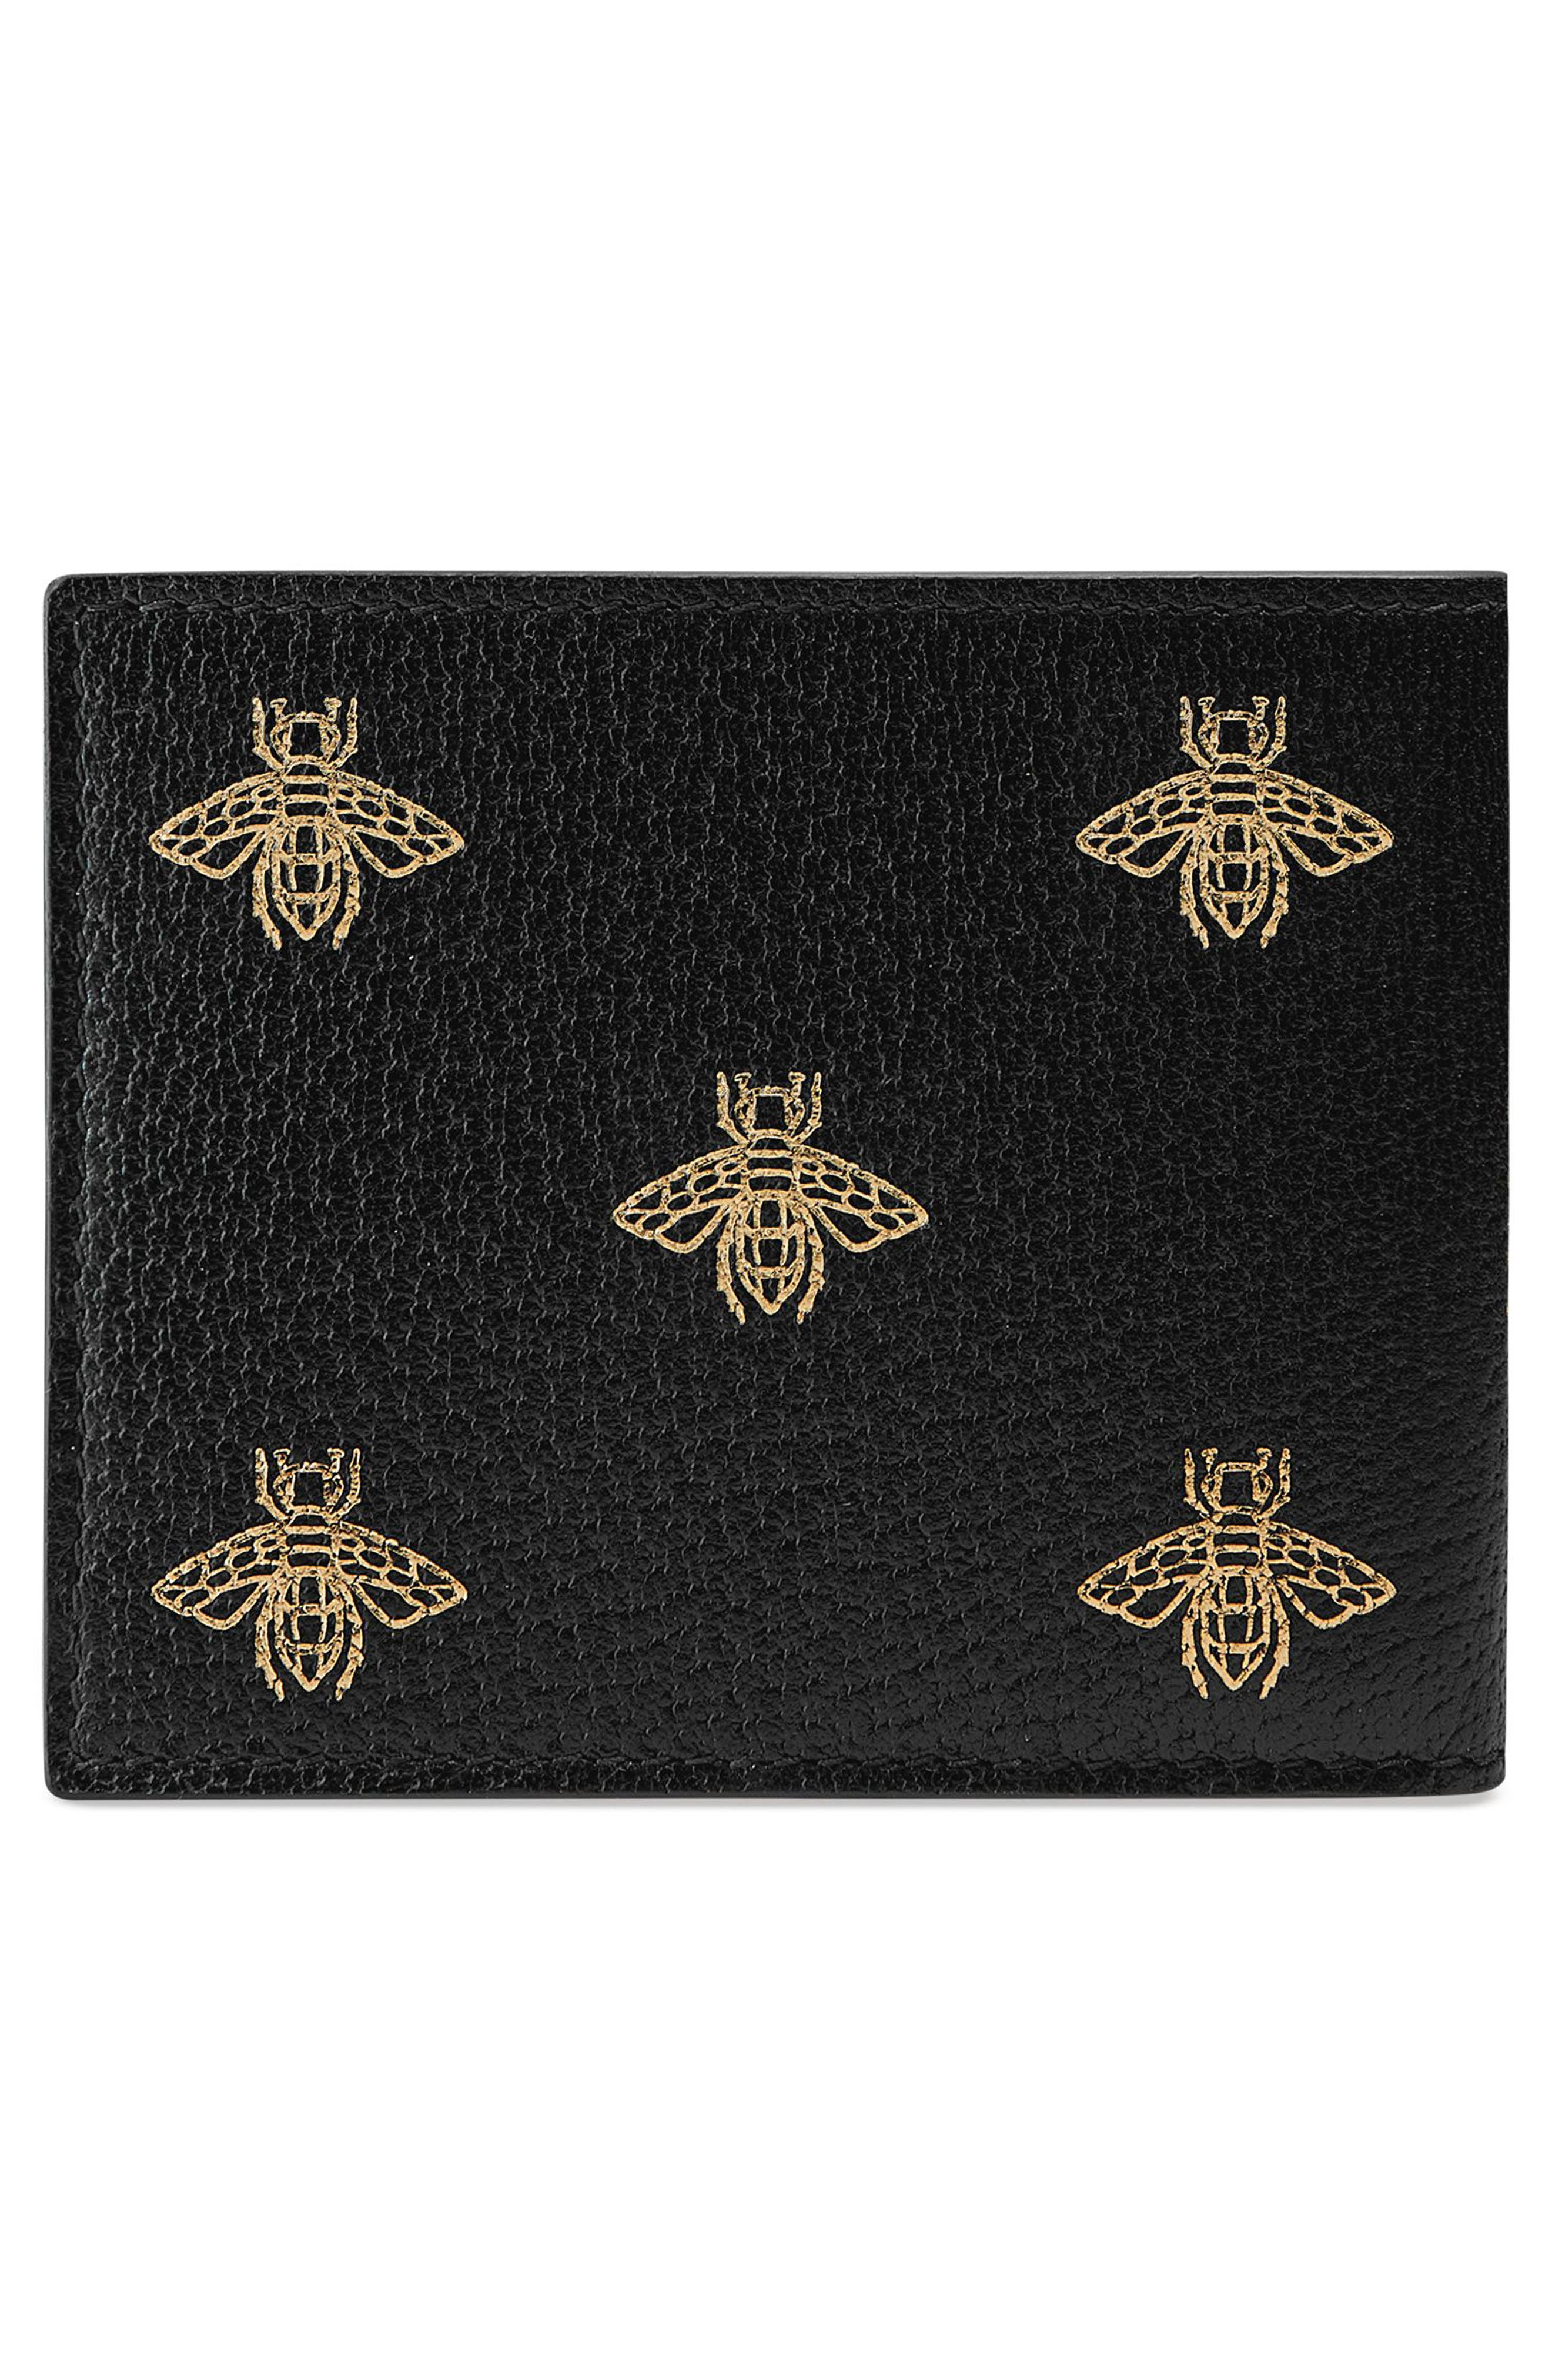 Bee Leather Wallet,                             Alternate thumbnail 3, color,                             001